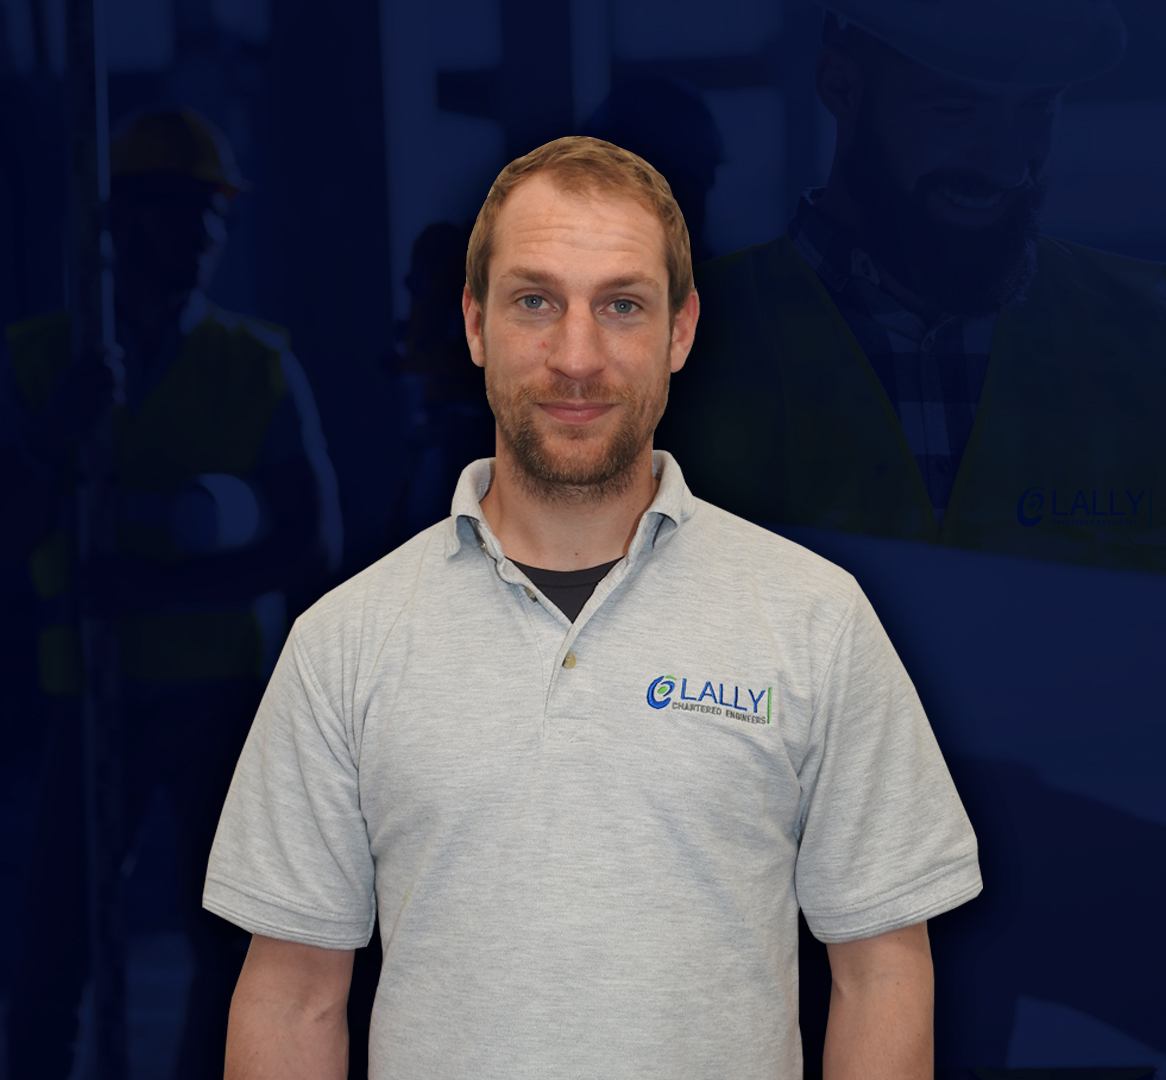 Maik Holtiegel, Geotechnical Engineer, Lally Chartered Engineering, Mayo, Ireland